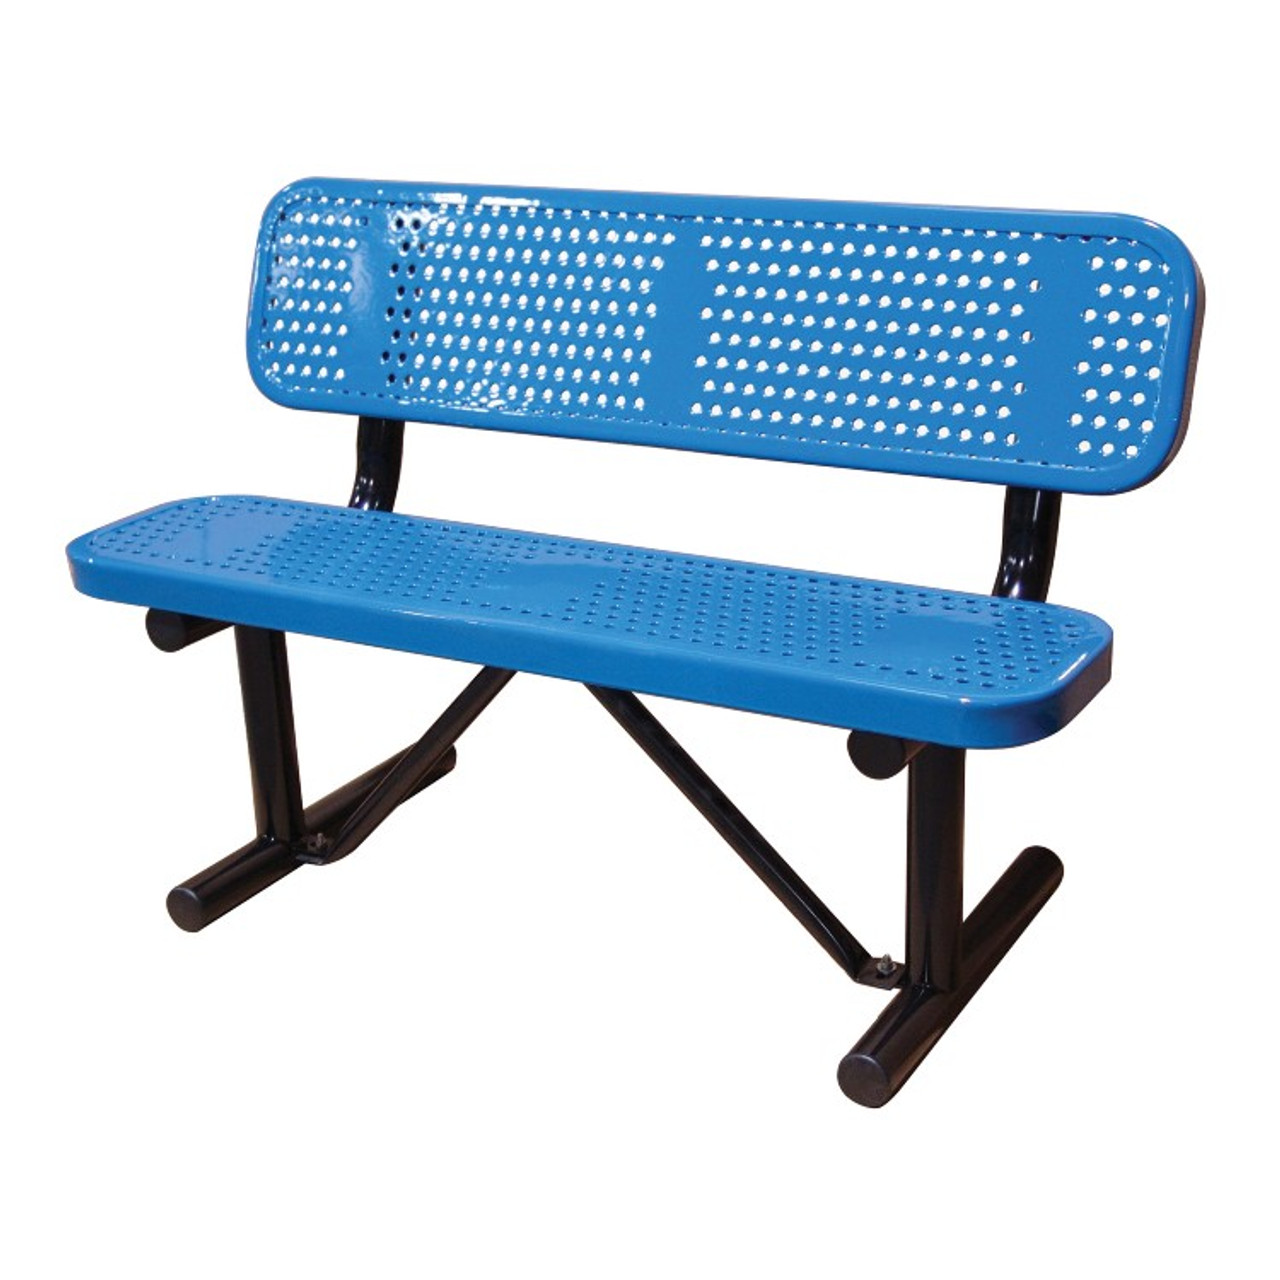 4' Punched Steel Bench with Back